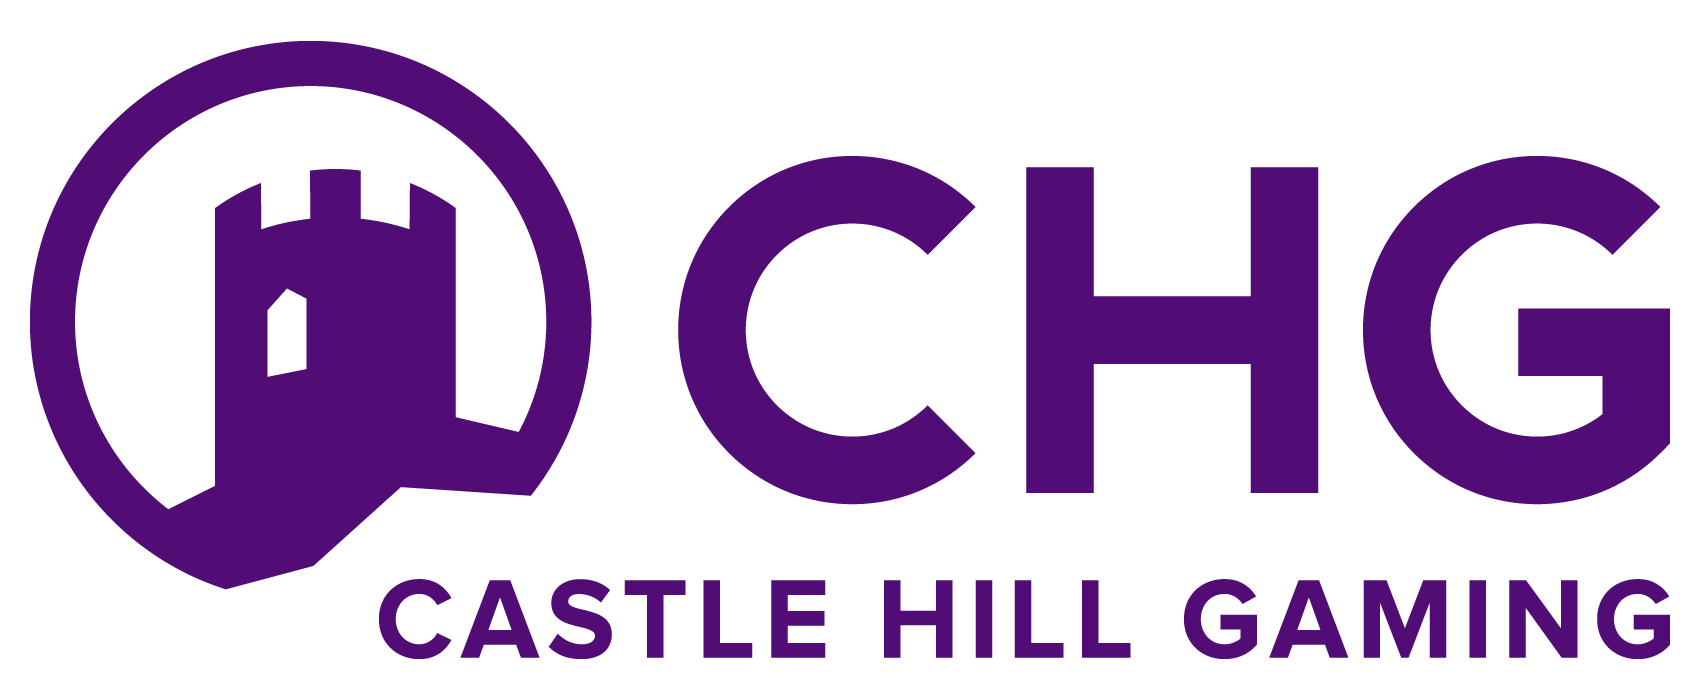 Castle Hill Gaming